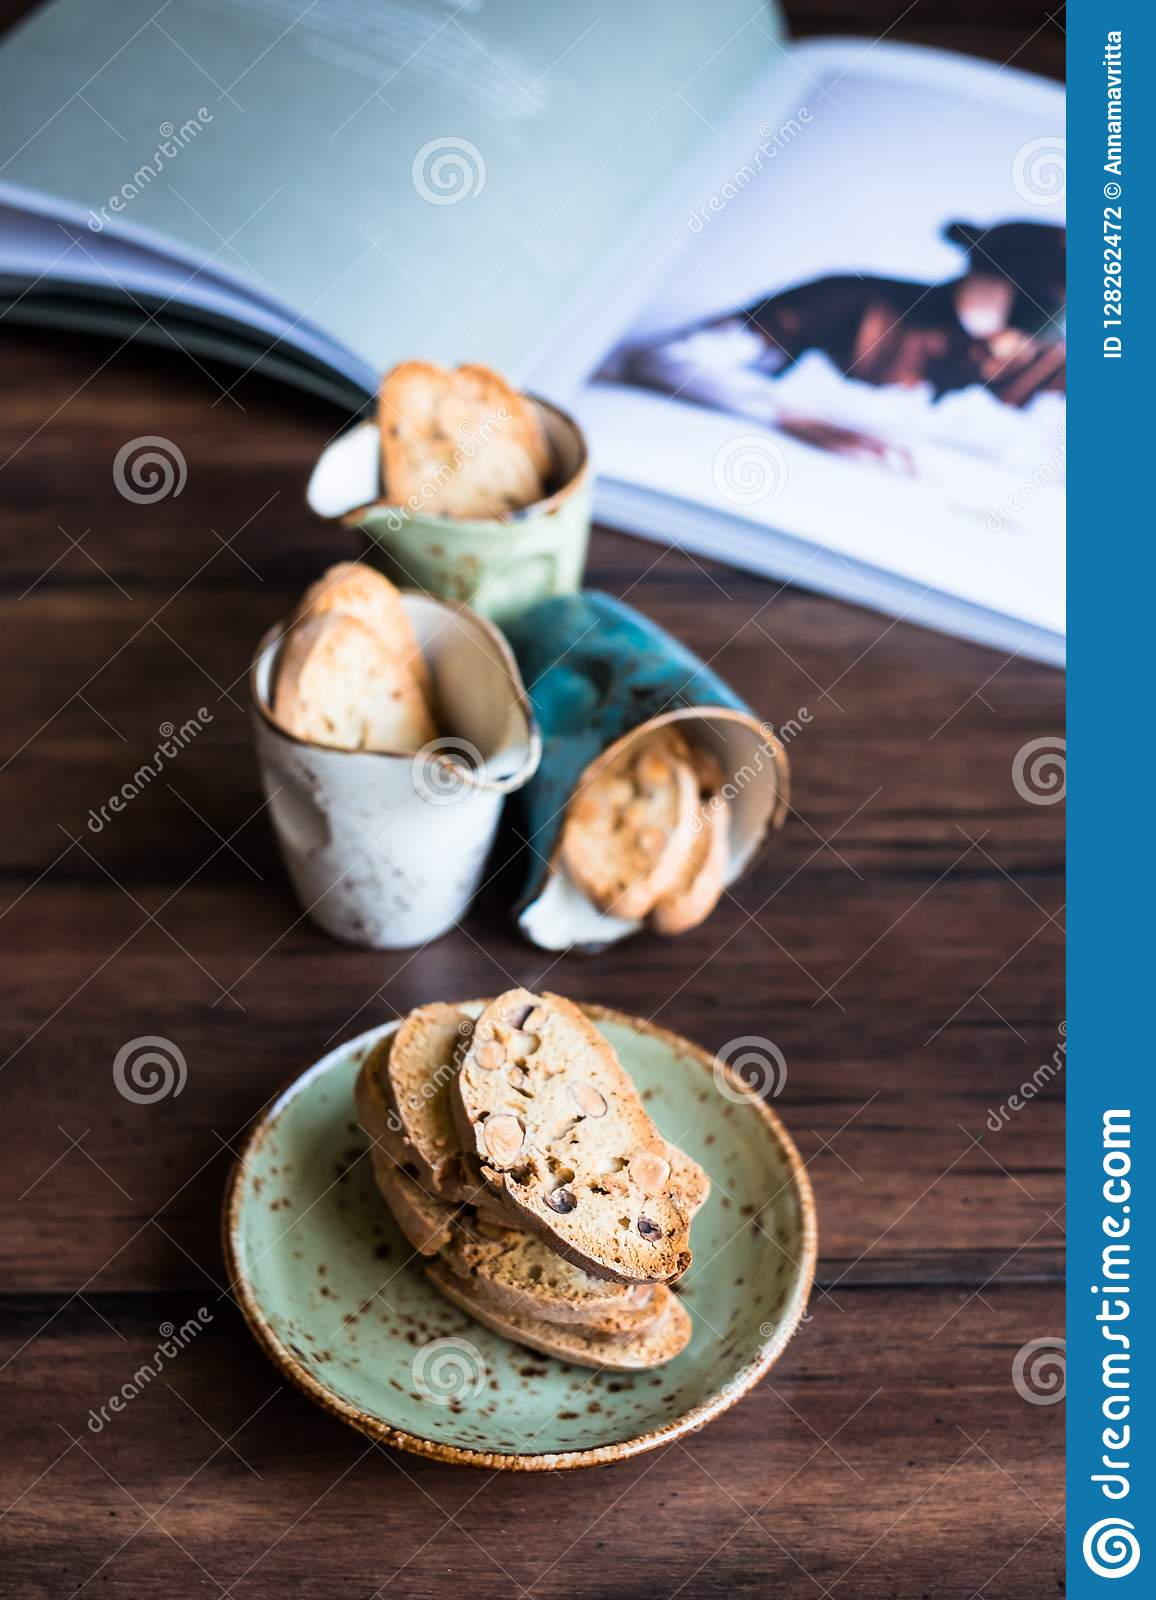 Italian dry cookies cantucci or biscotti with almond nuts stacked on a dessert plate on a wooden table, selective focus. Image wit